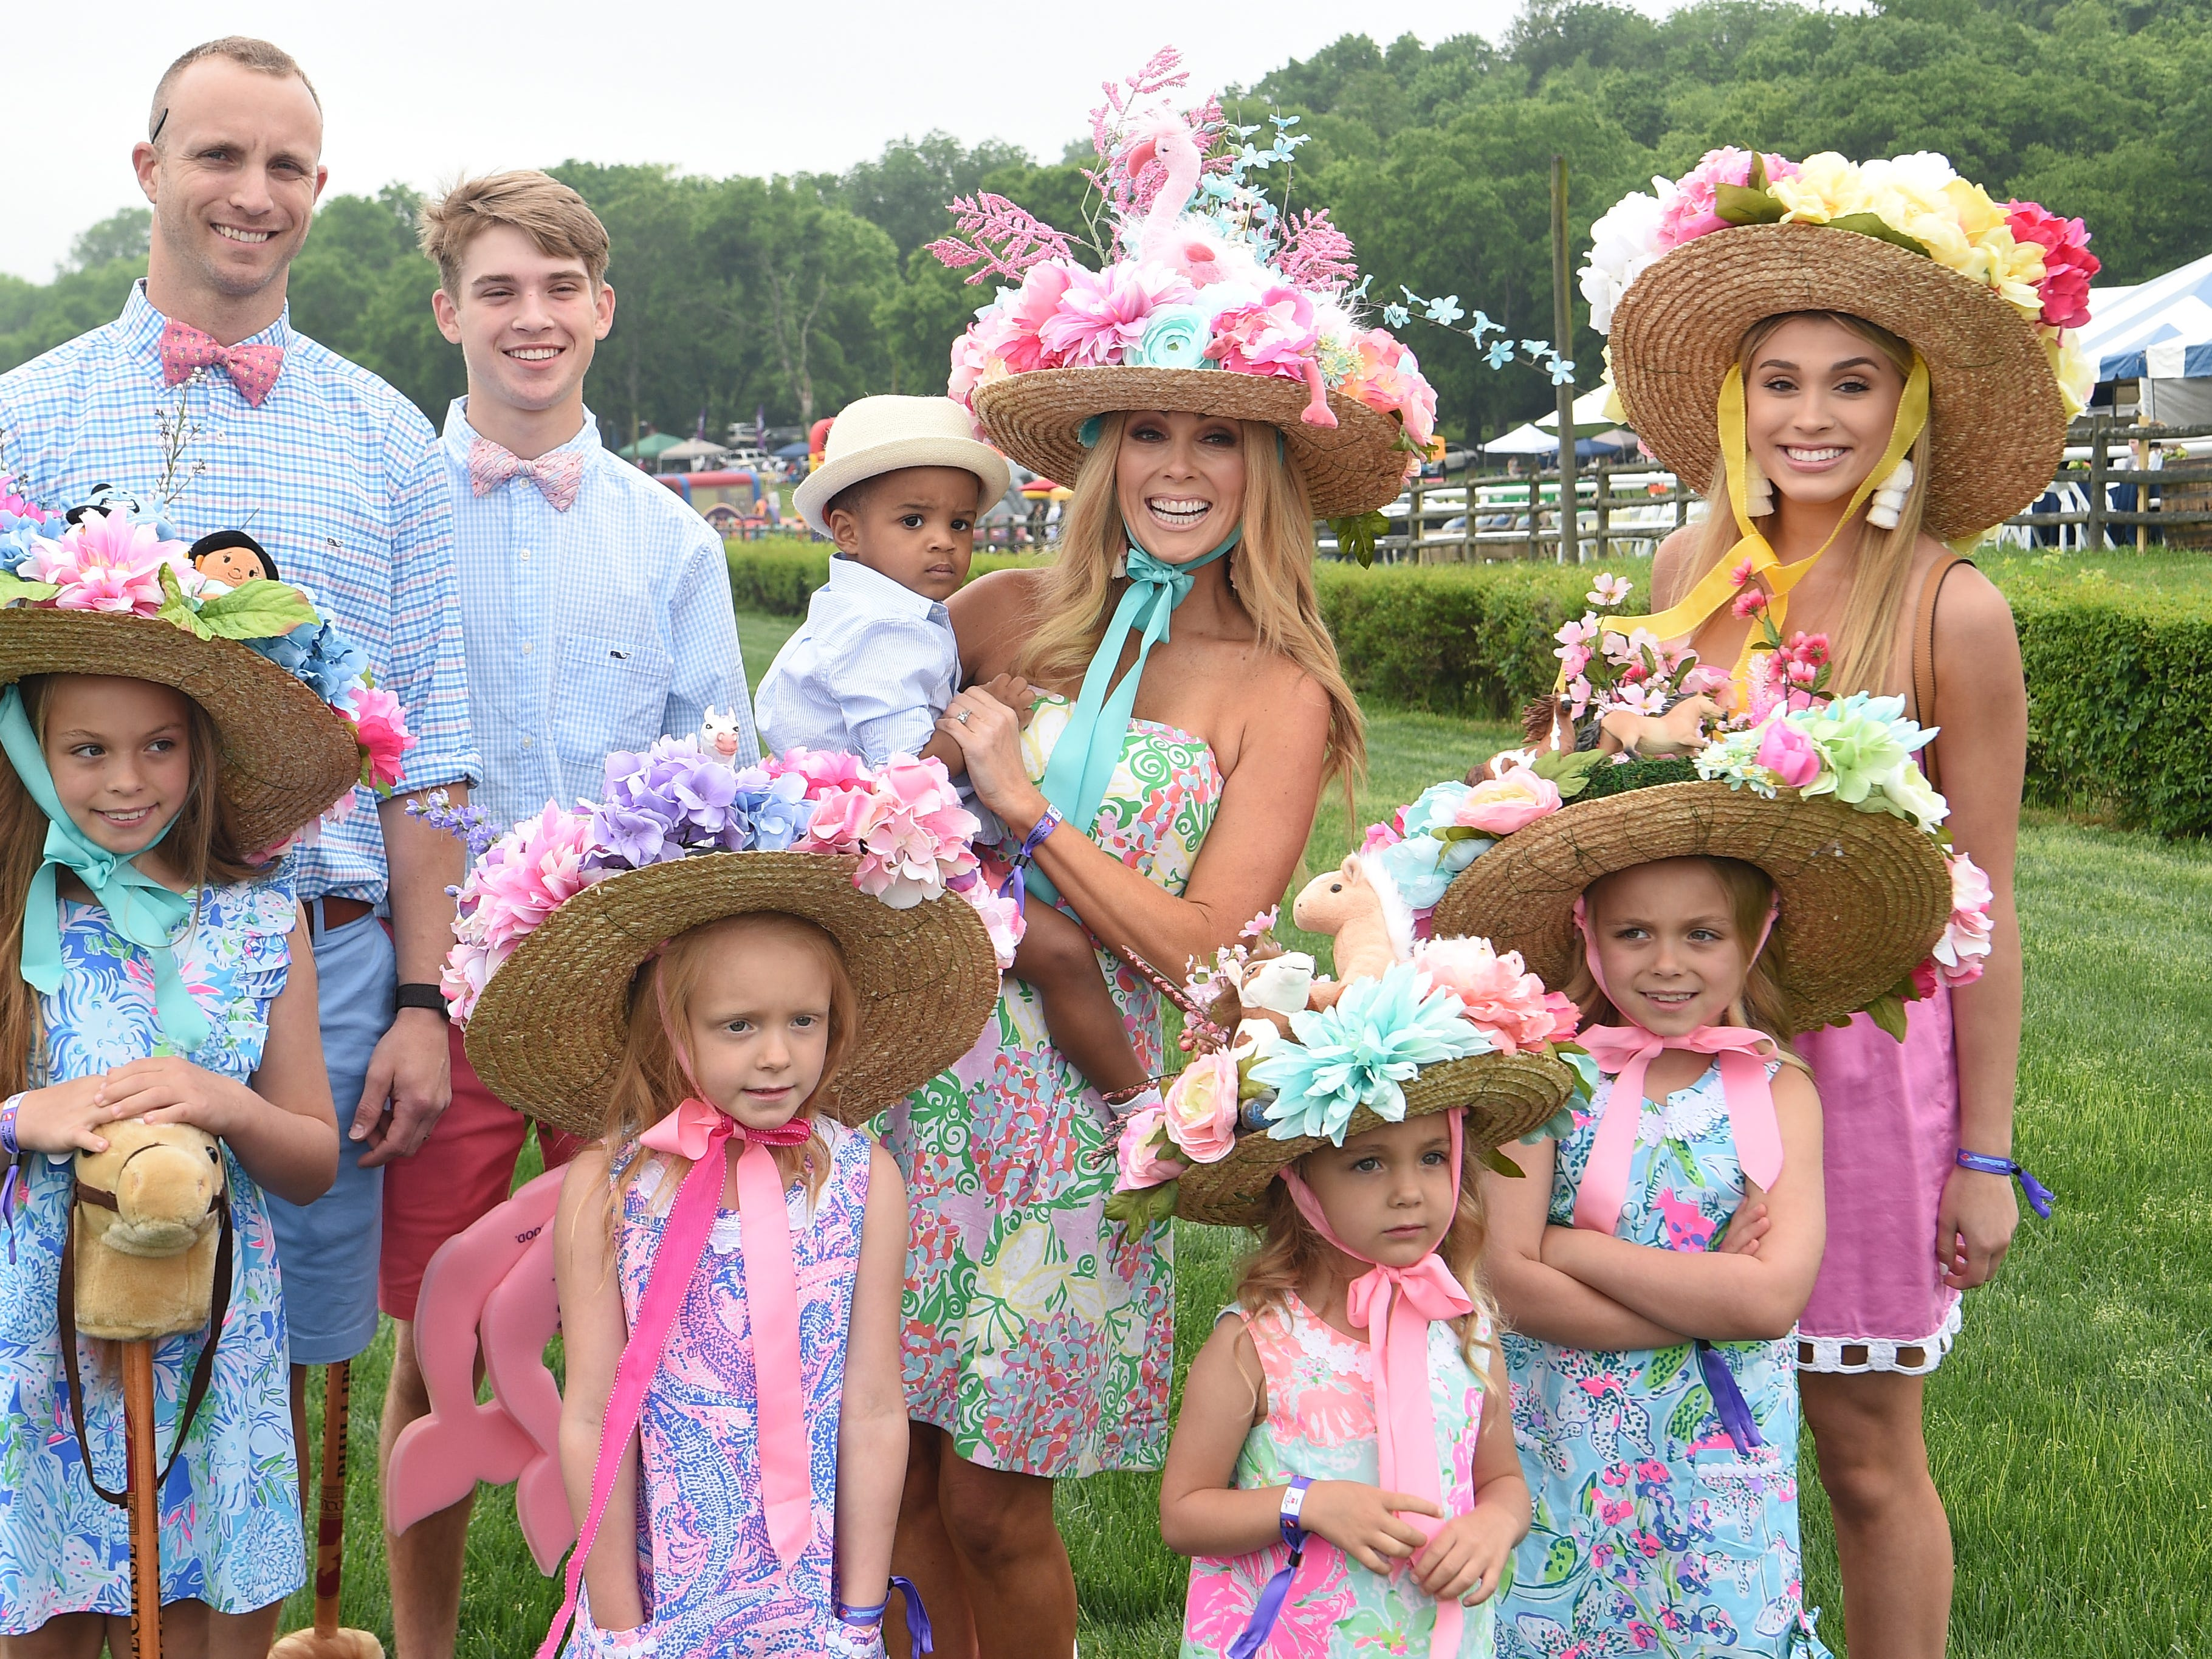 Franklin residents Ronald and Jenny Reimold and their children at the 78th Iroquois Steeplechase at Percy Warner park in Nashville on Saturday, May, 11, 2019.